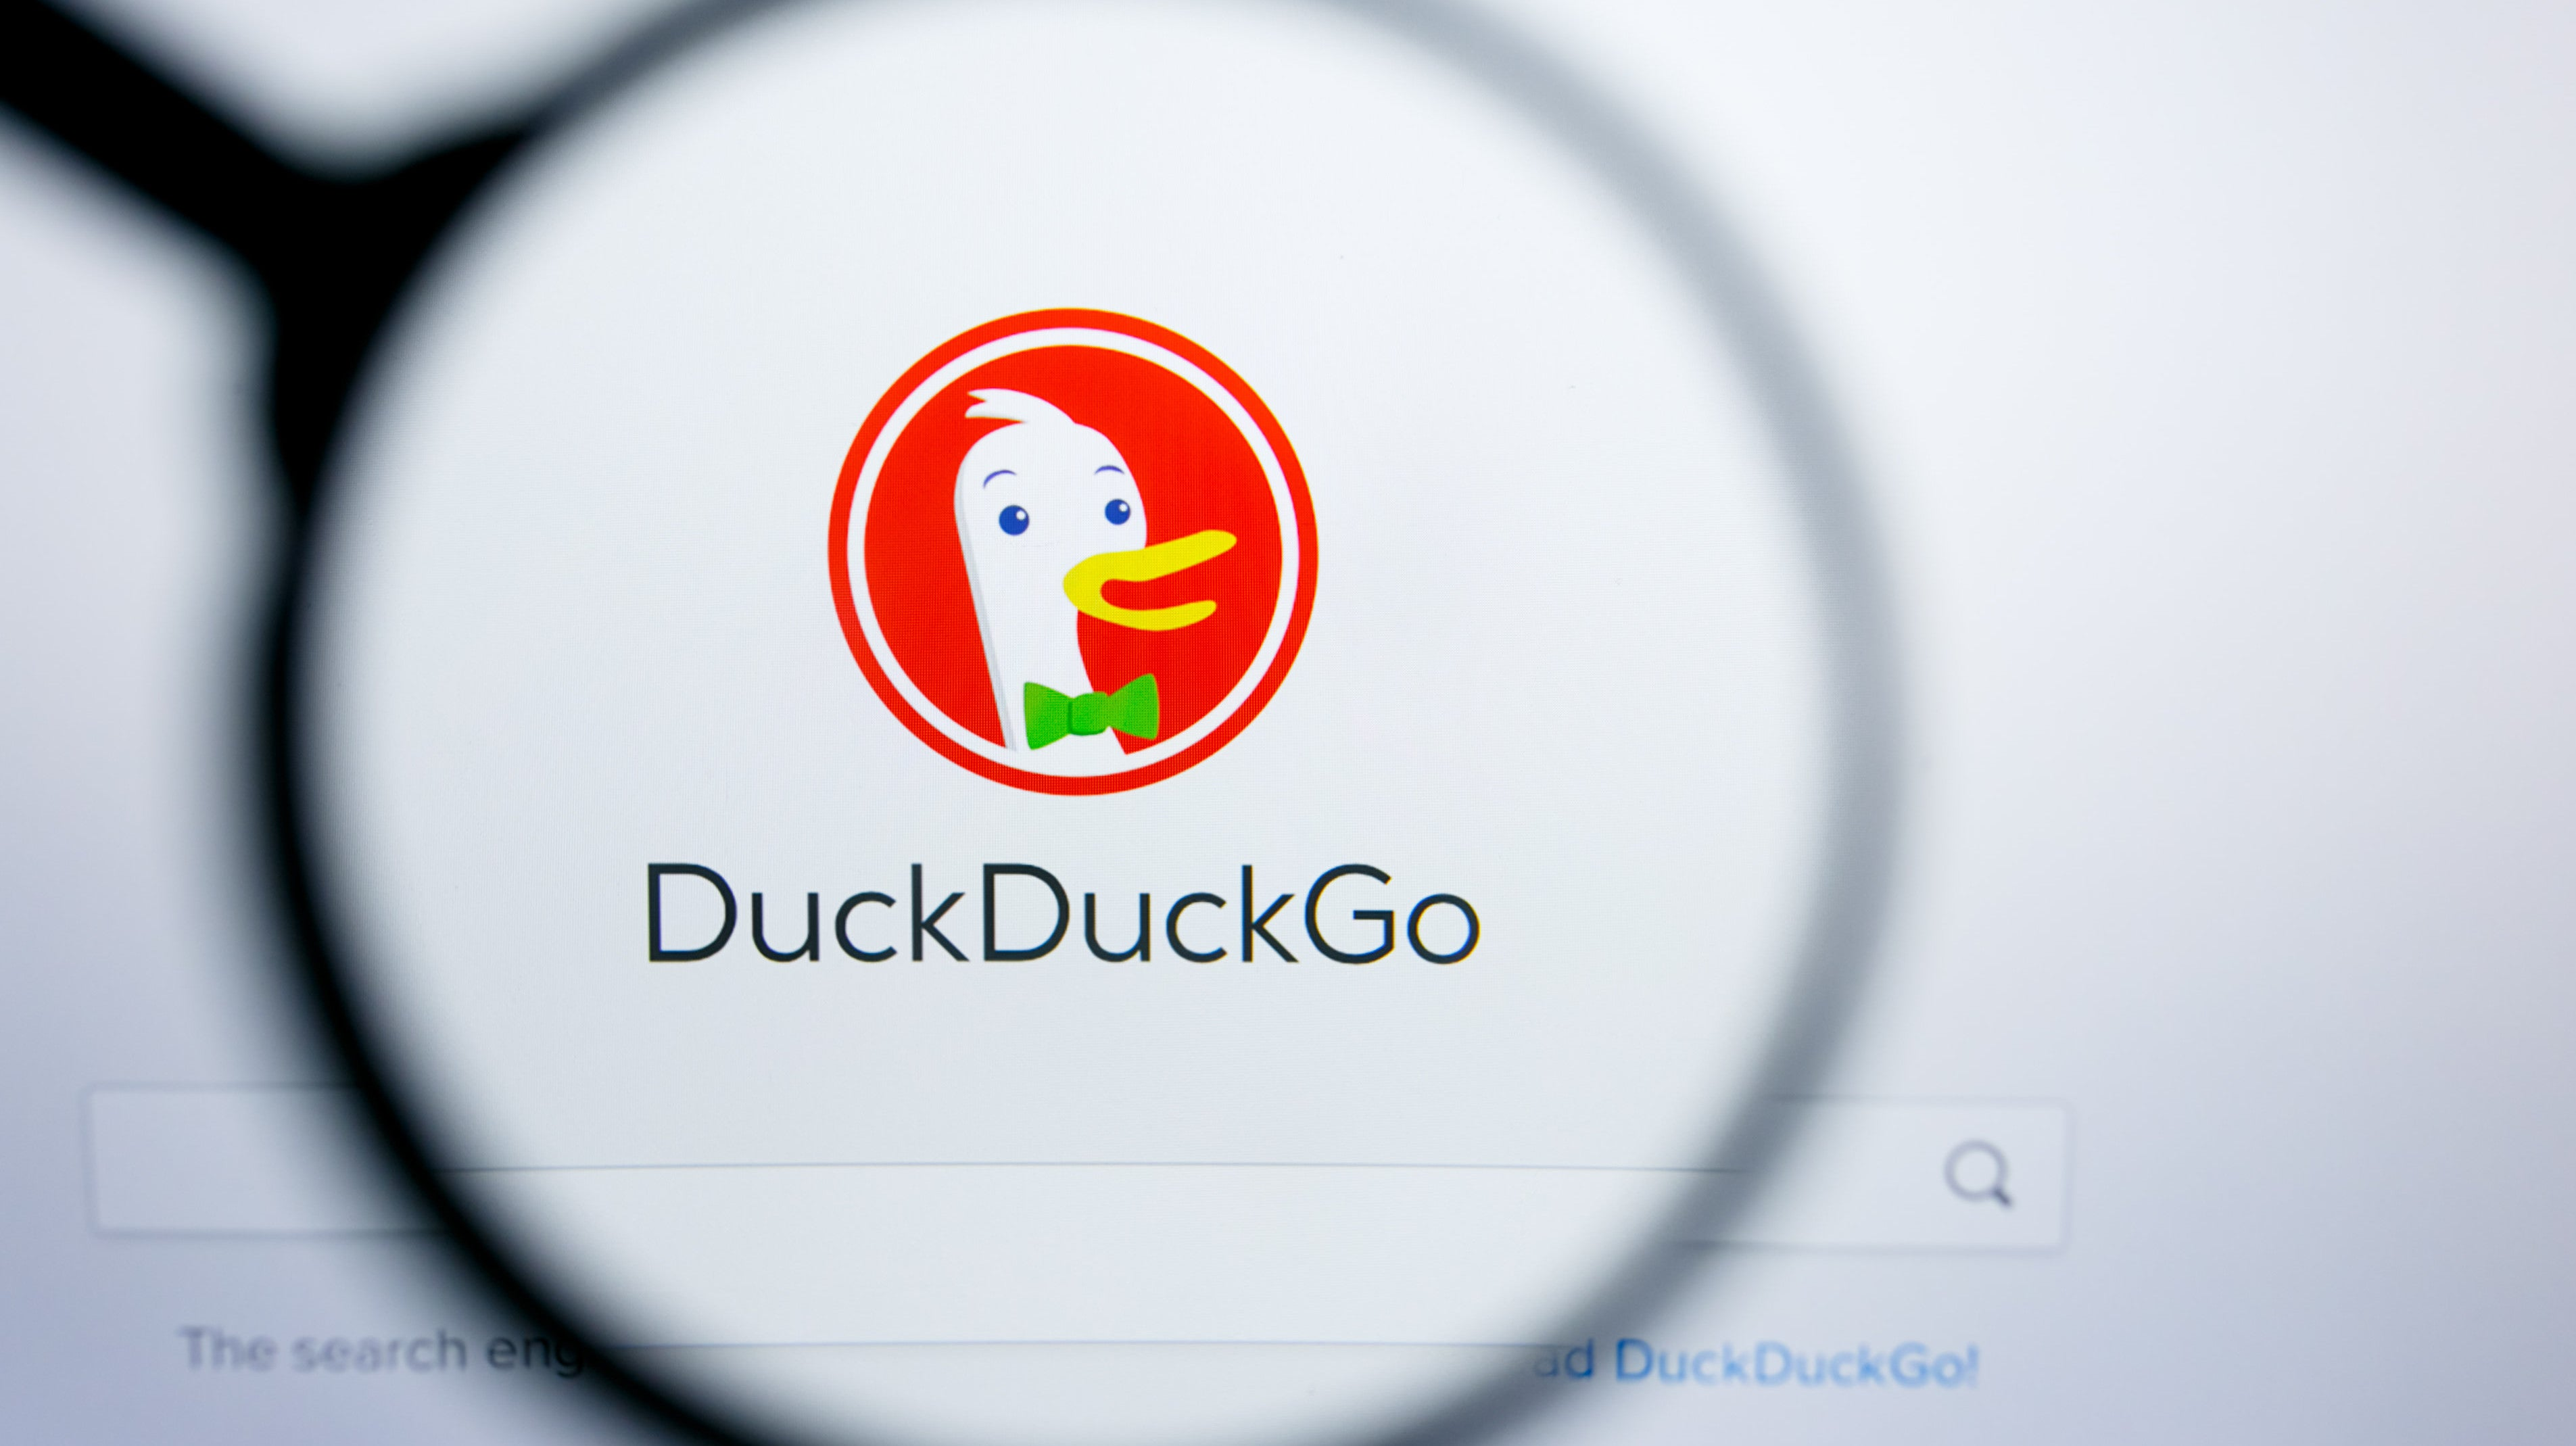 Use DuckDuckGo 'Lite' For Absurdly Fast Search Results